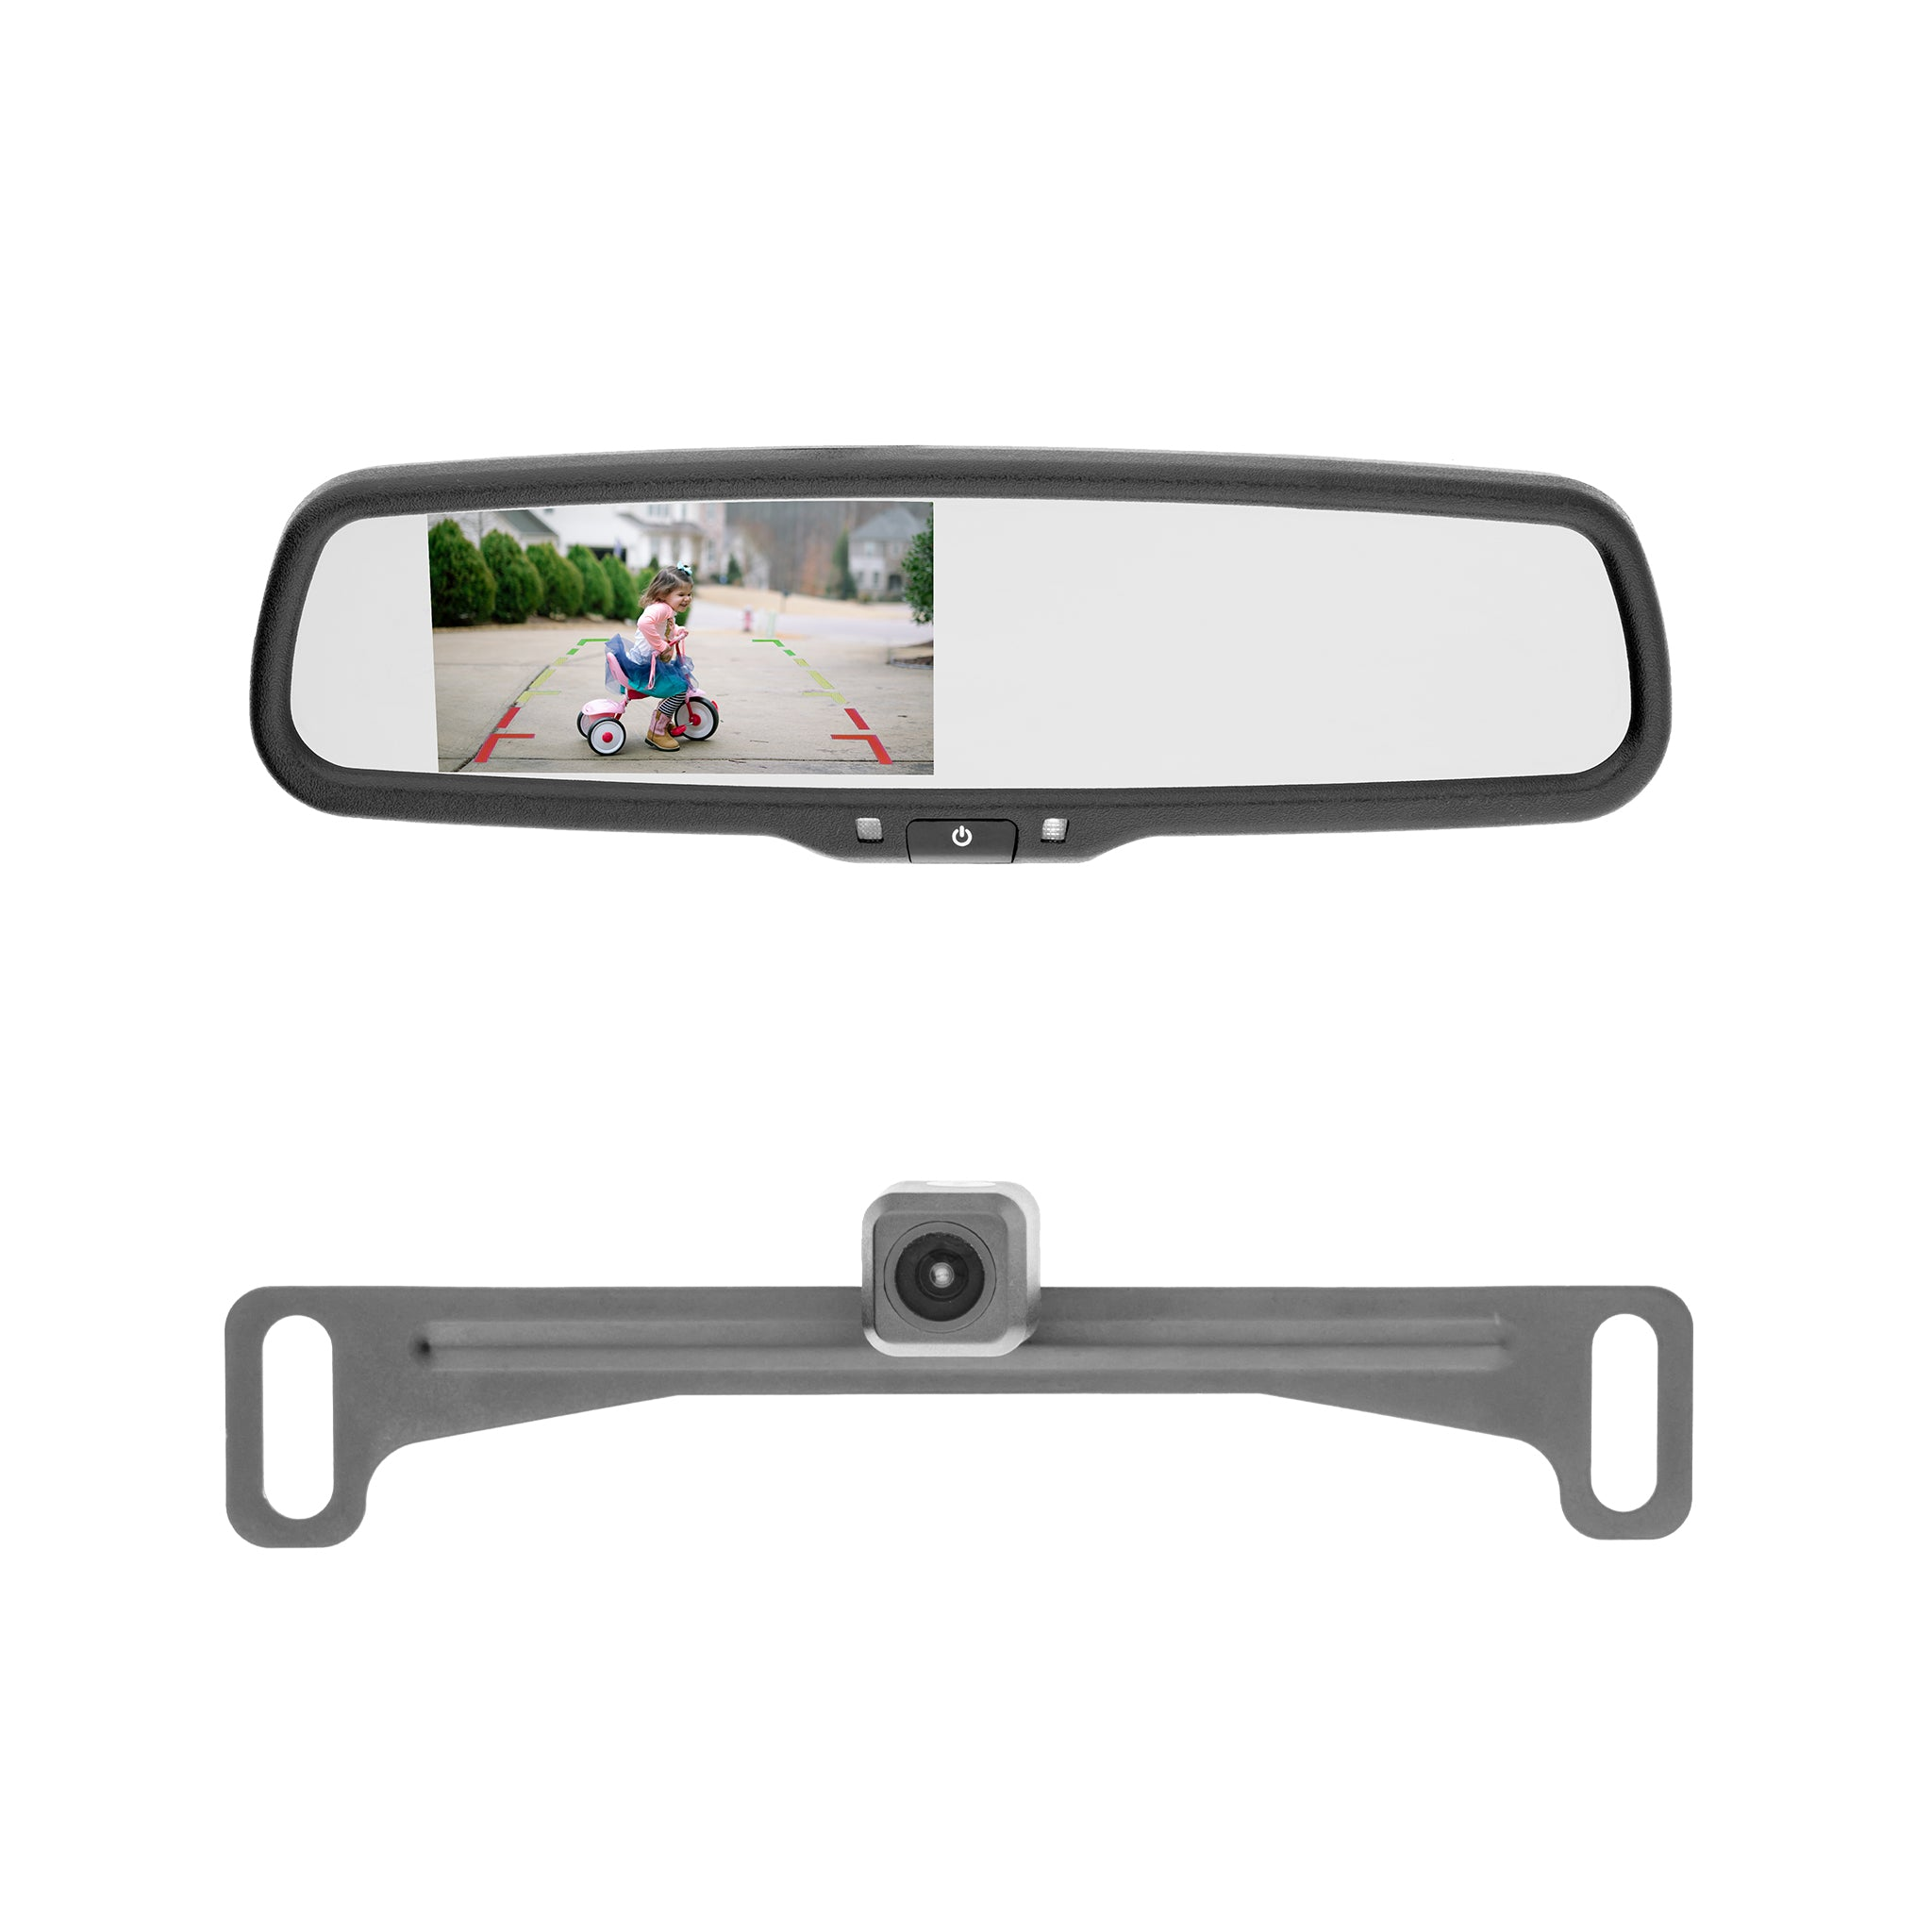 Backup Camera Kit with Rearview Mirror Monitor & License Plate Mount